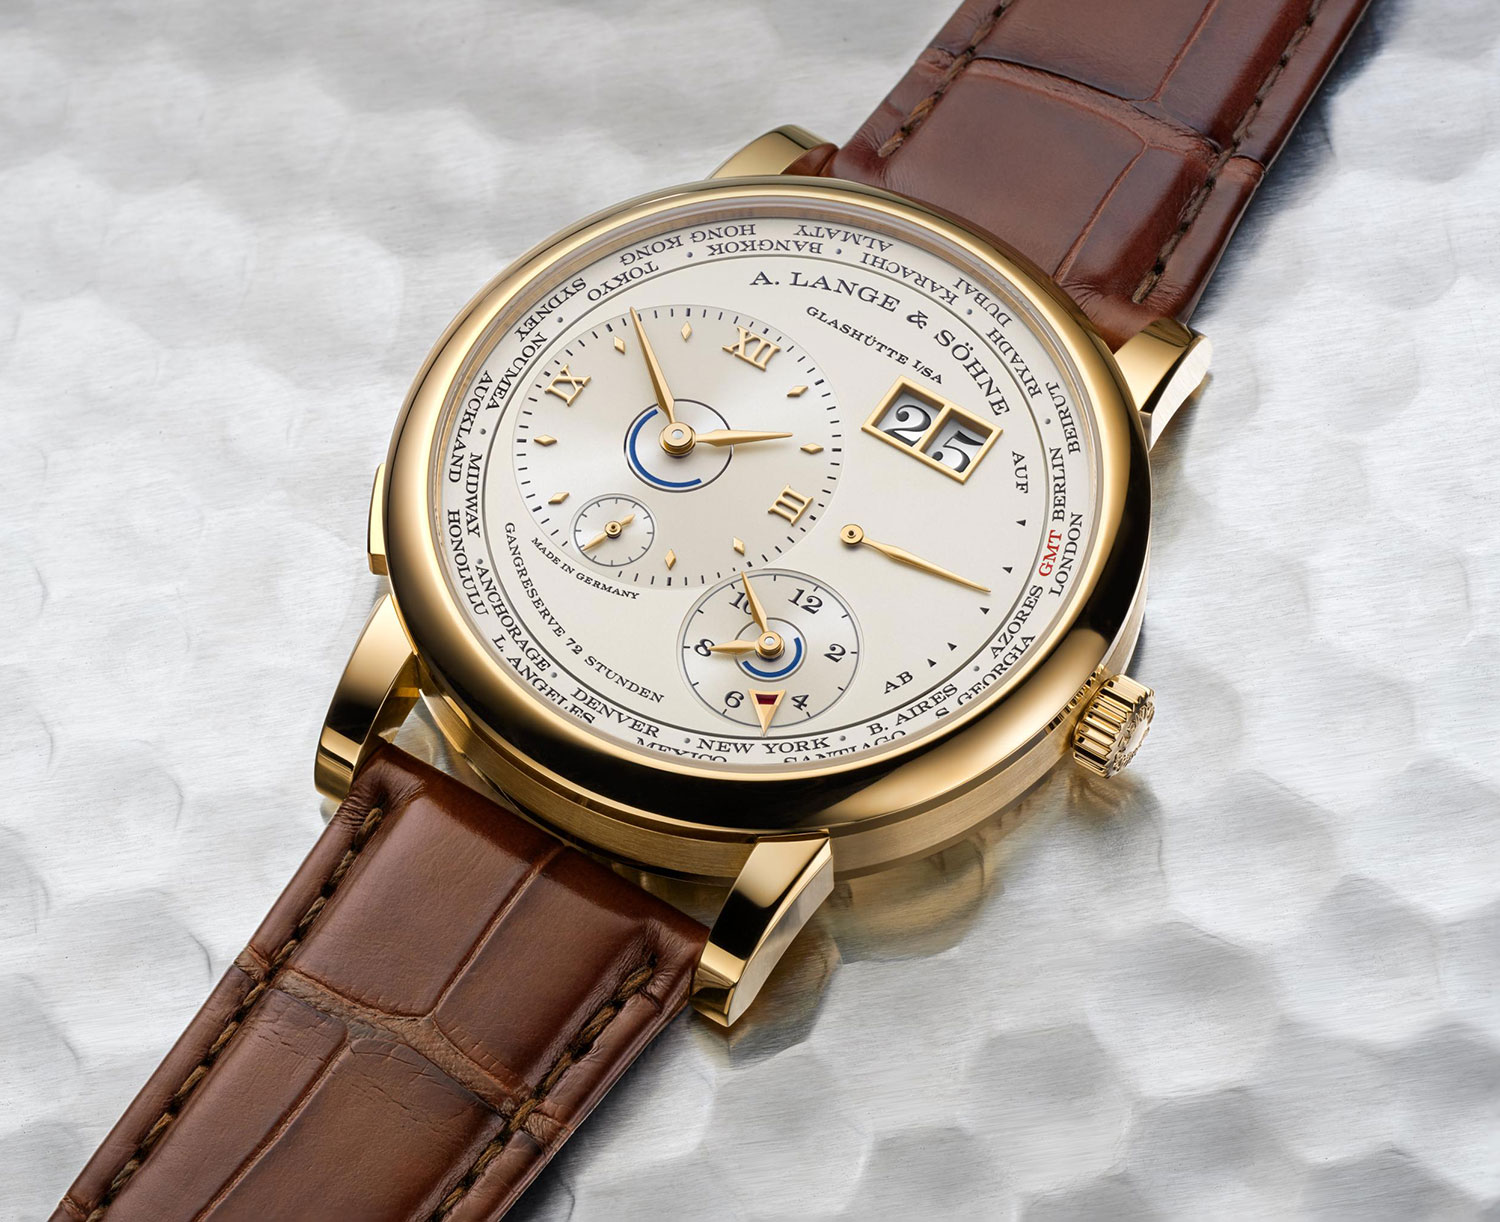 Lange 1 Time Zone en oro amarillo